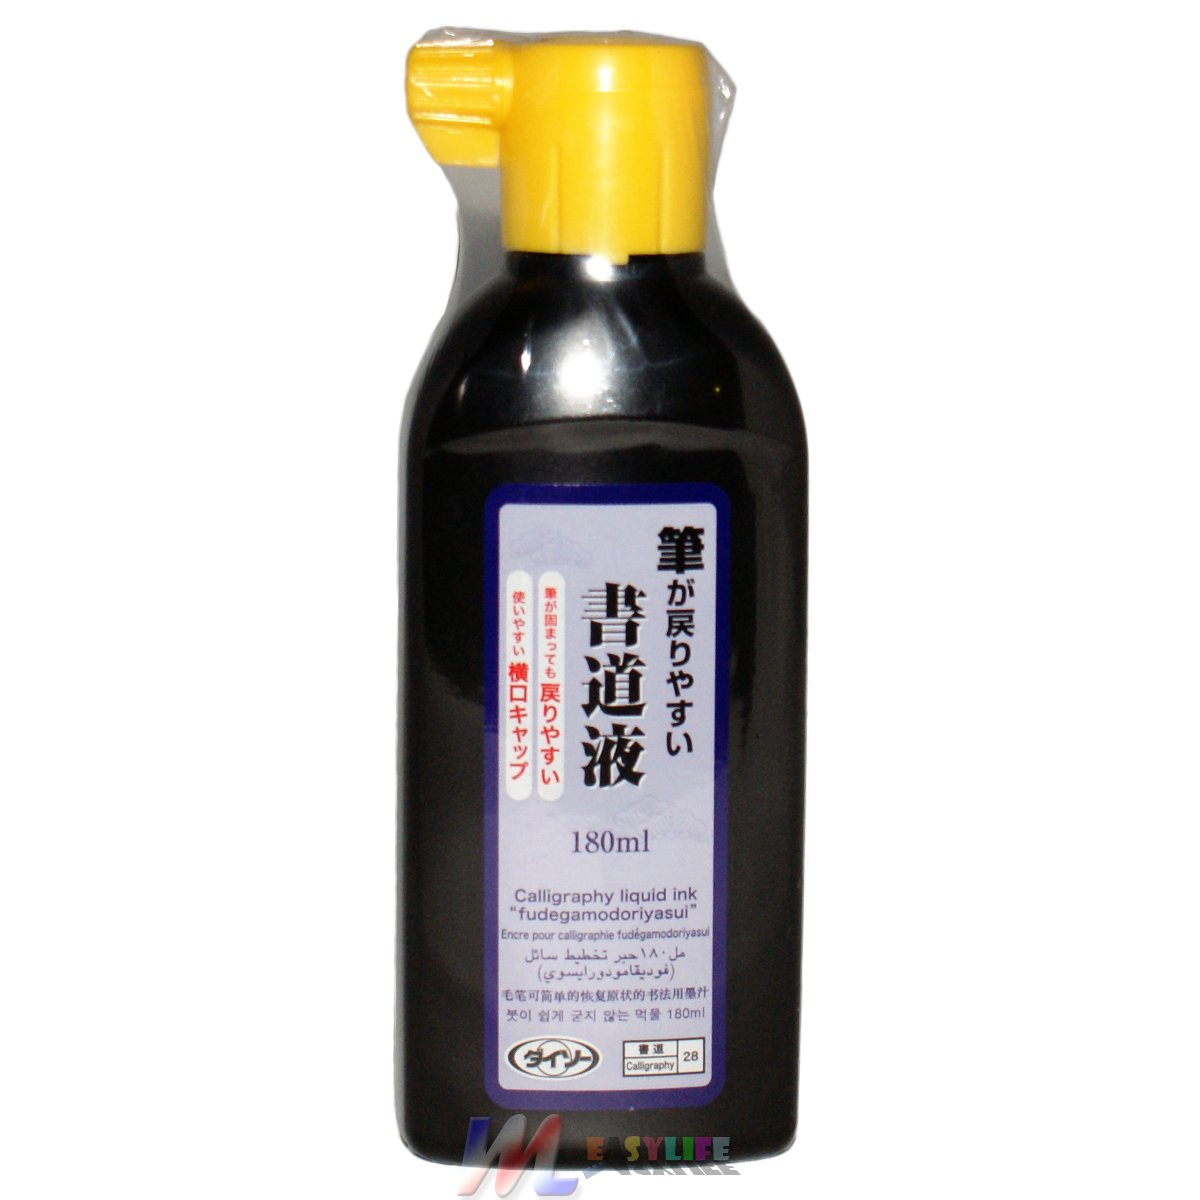 Sumi Calligraphy Liquid Ink in a 180ml Bottle Daiso NO28